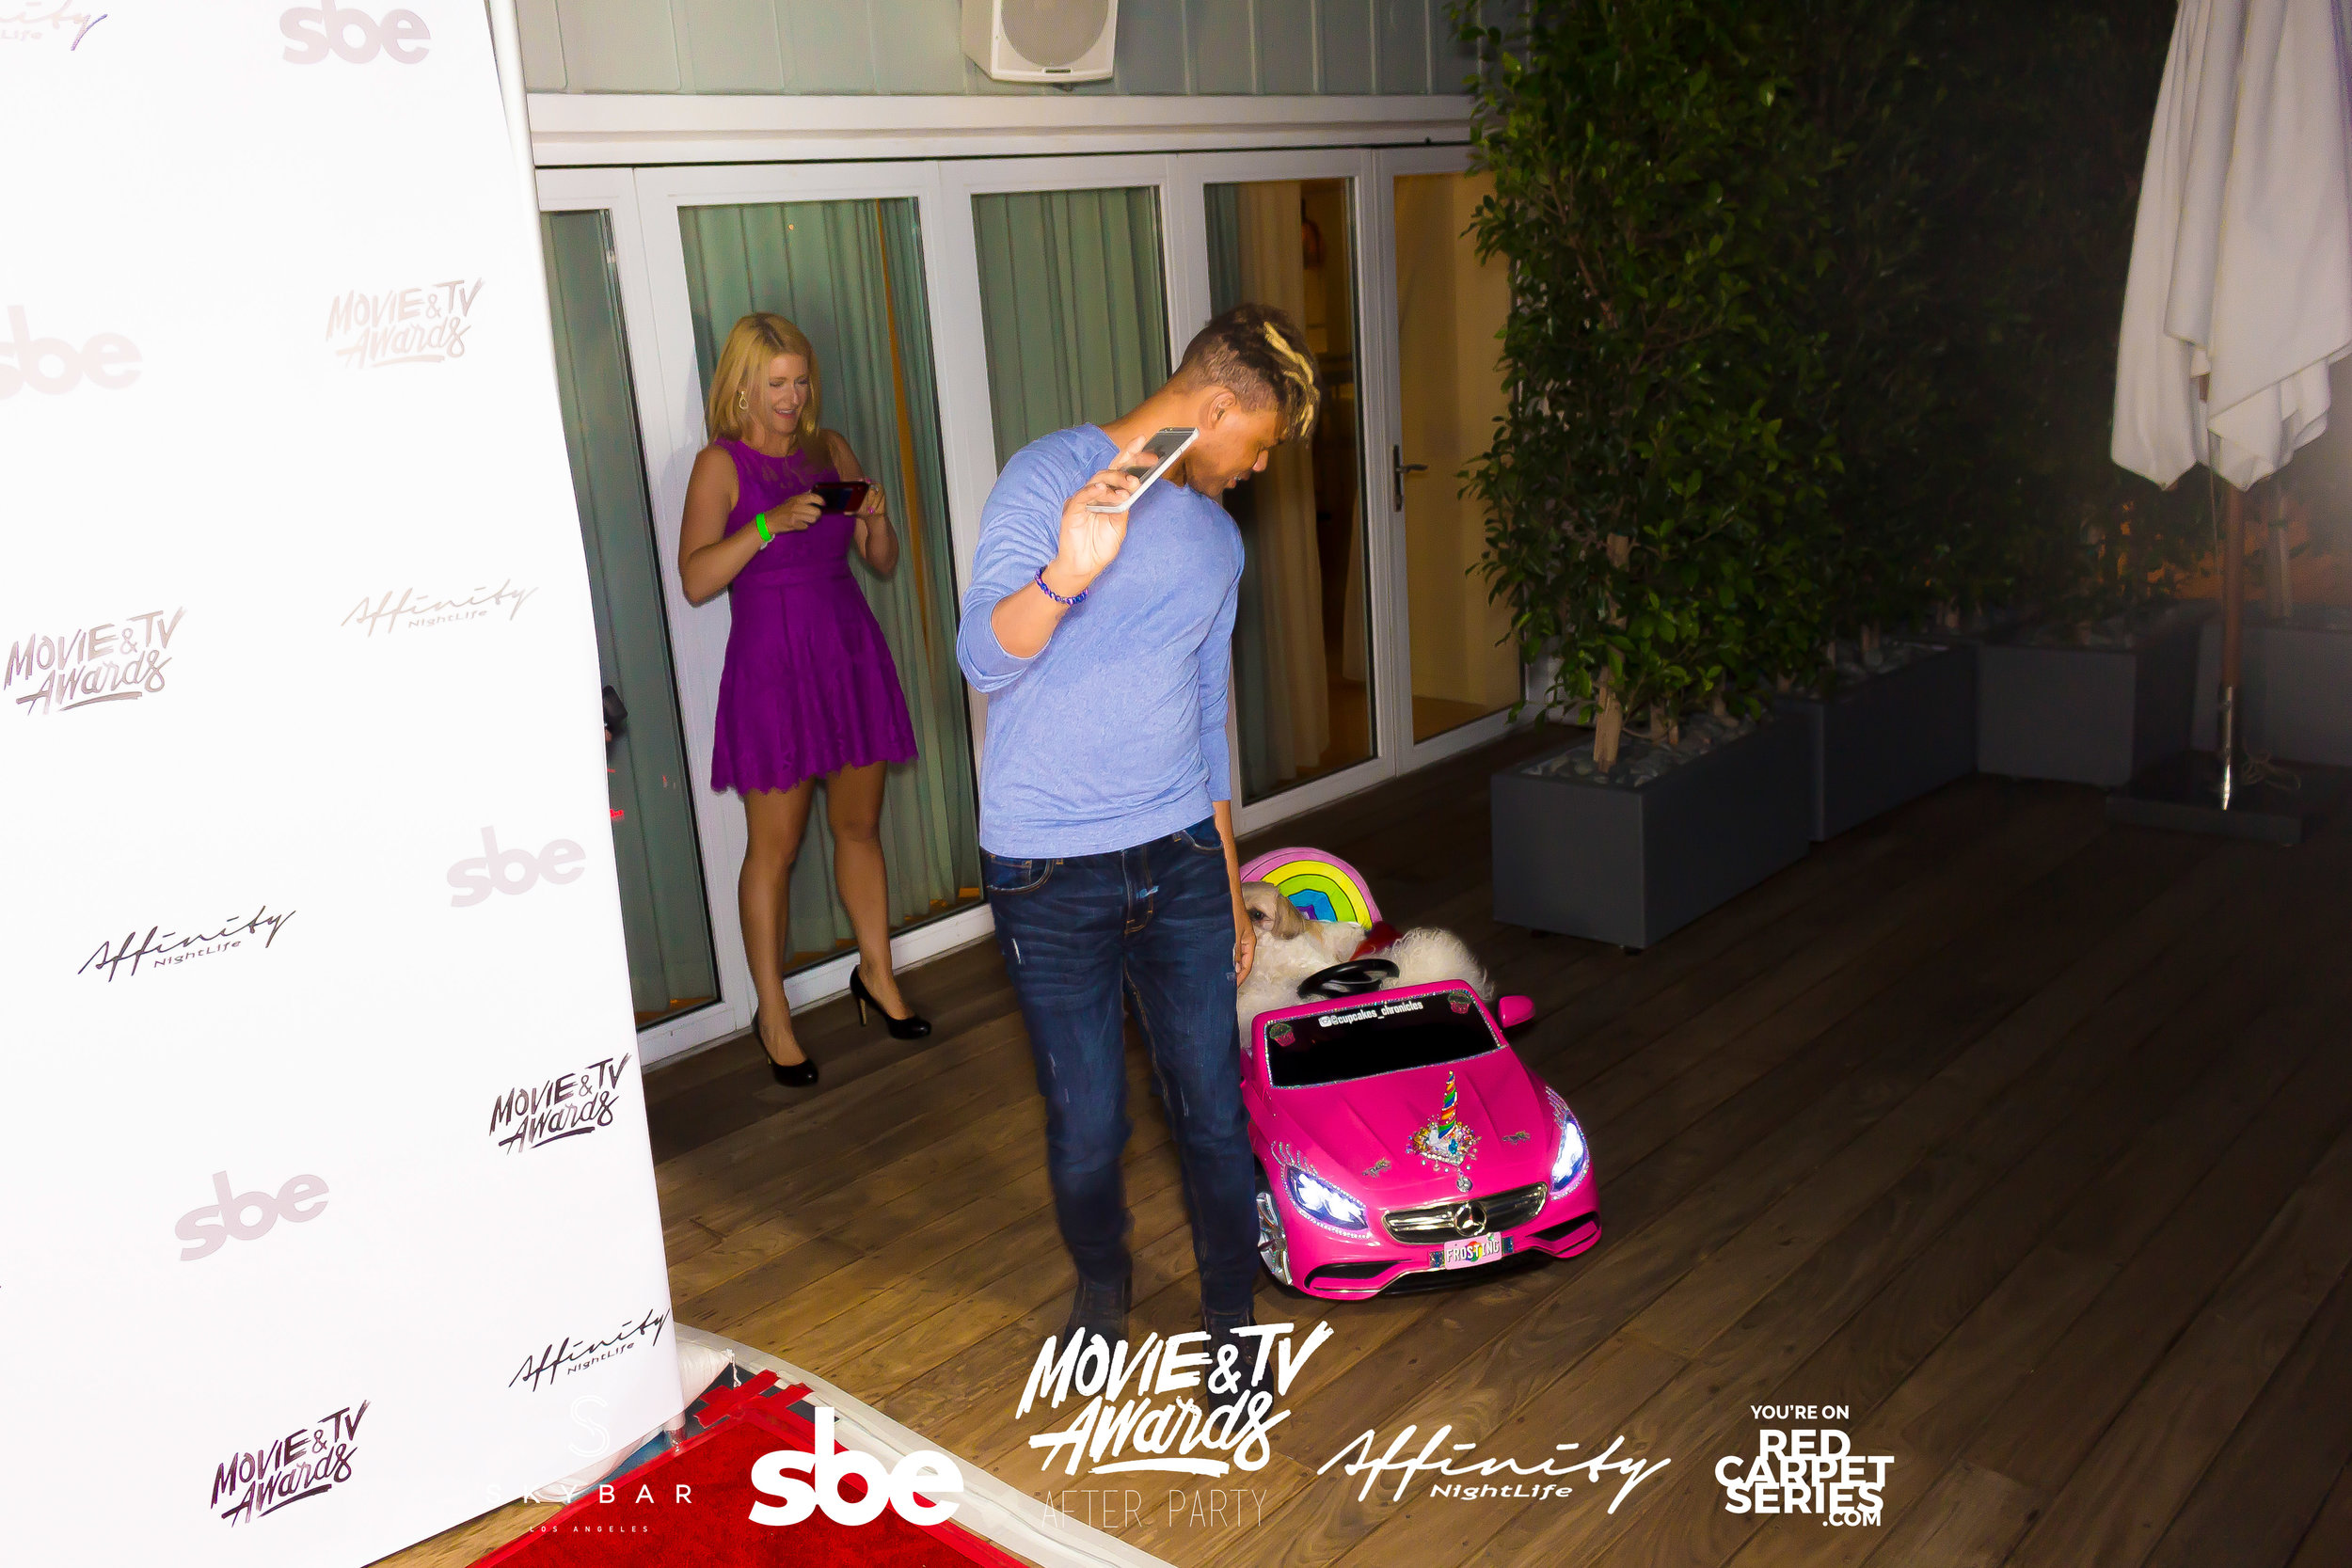 Affinity Nightlife MTV Movie & TV Awards After Party - Skybar at Mondrian - 06-15-19 - Vol. 1_23.jpg